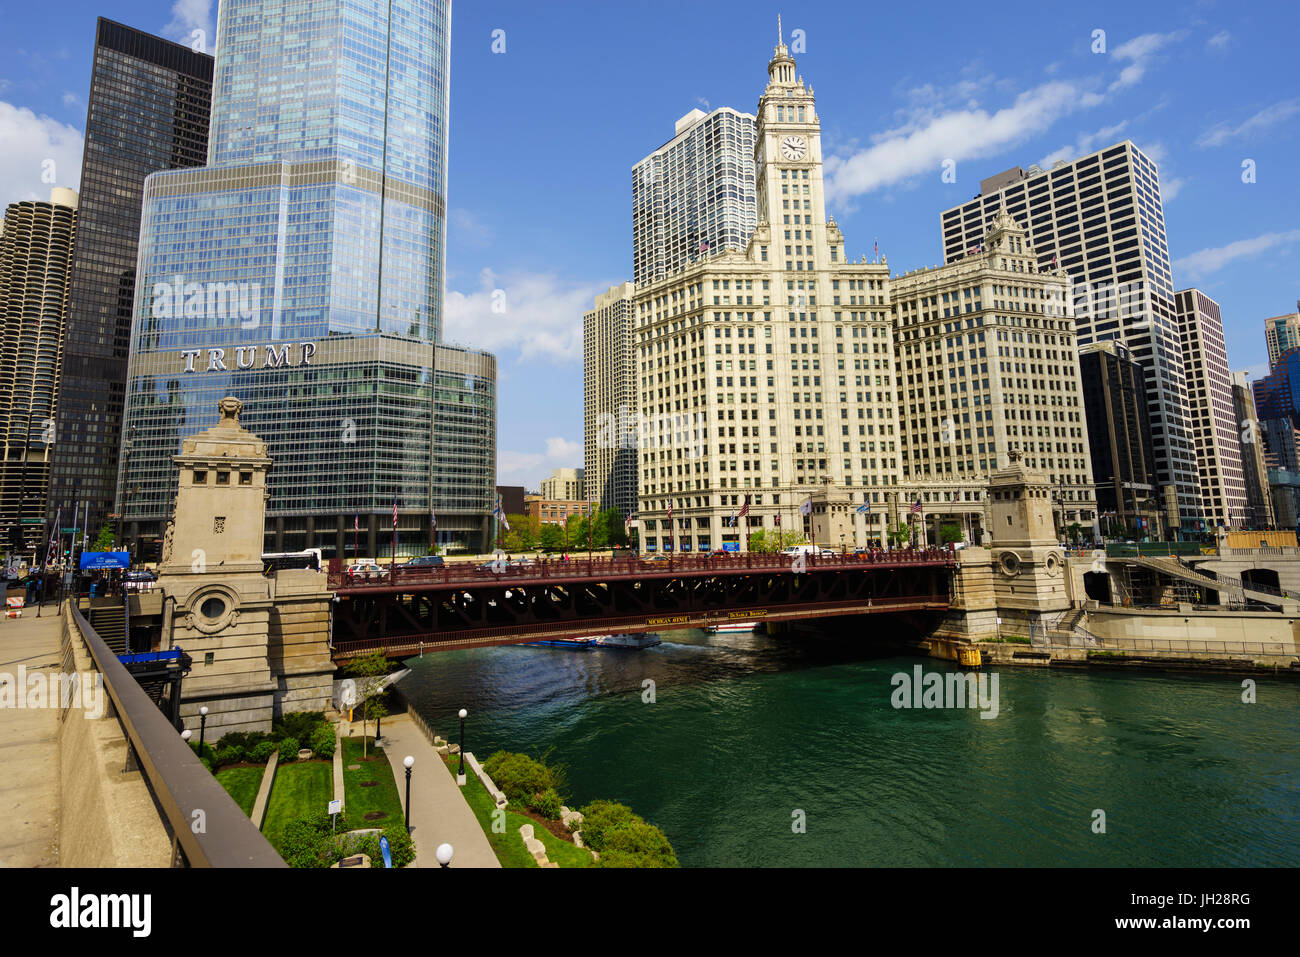 Trump Tower and Wrigley Building on the Chicago River, Chicago, Illinois, United States of America, North America - Stock Image